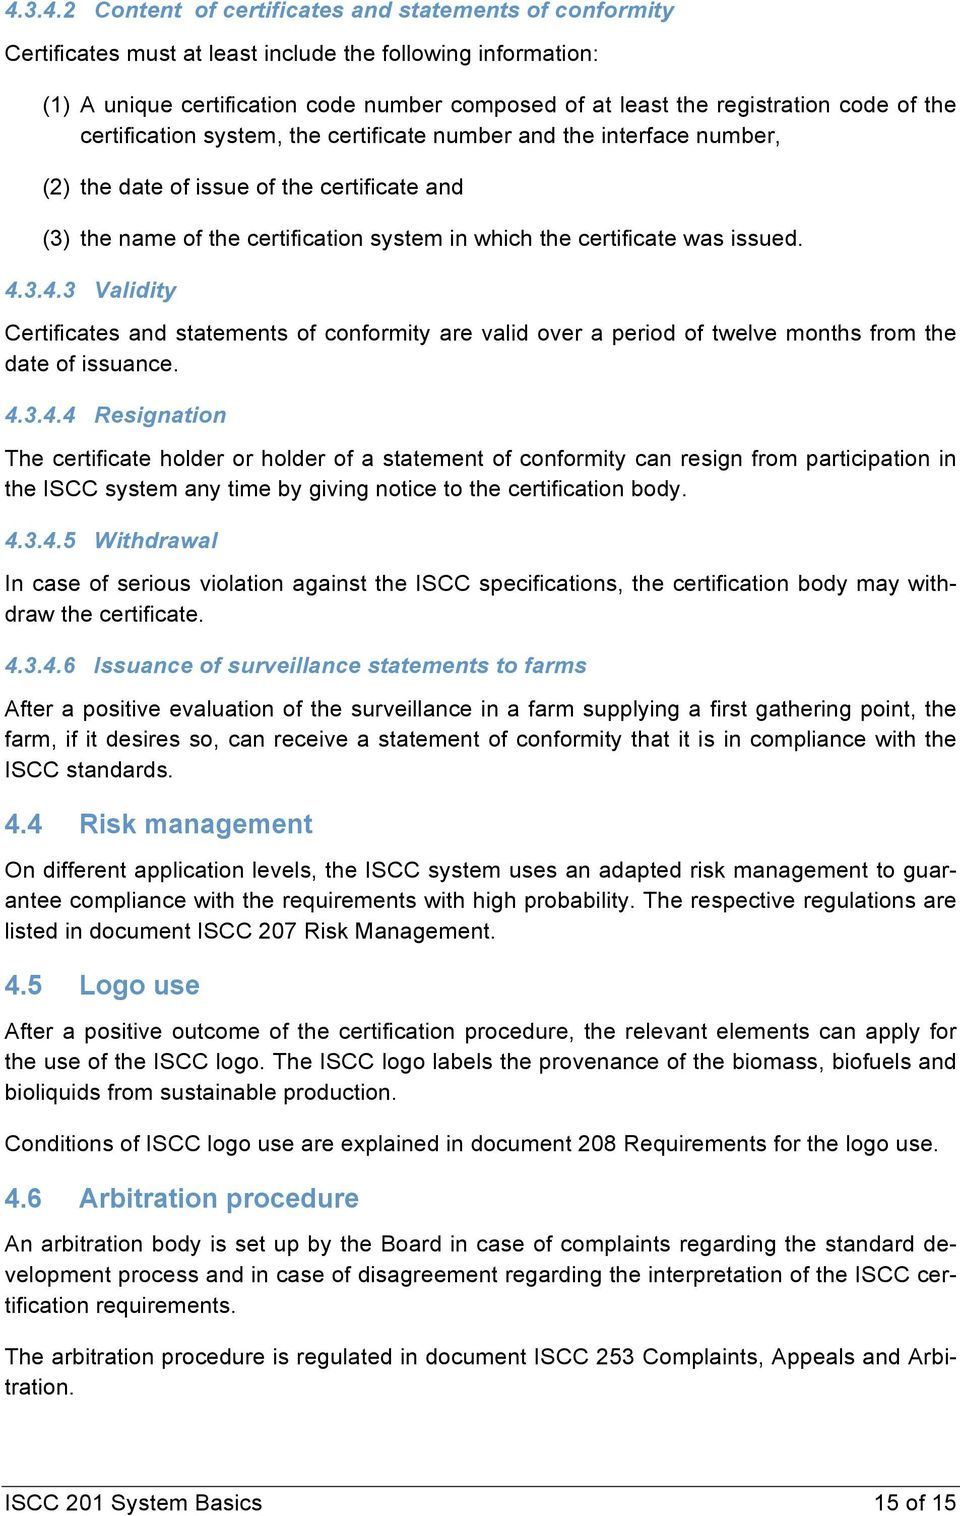 issued. 4.3.4.3 Validity Certificates and statements of conformity are valid over a period of twelve months from the date of issuance. 4.3.4.4 Resignation The certificate holder or holder of a statement of conformity can resign from participation in the ISCC system any time by giving notice to the certification body.